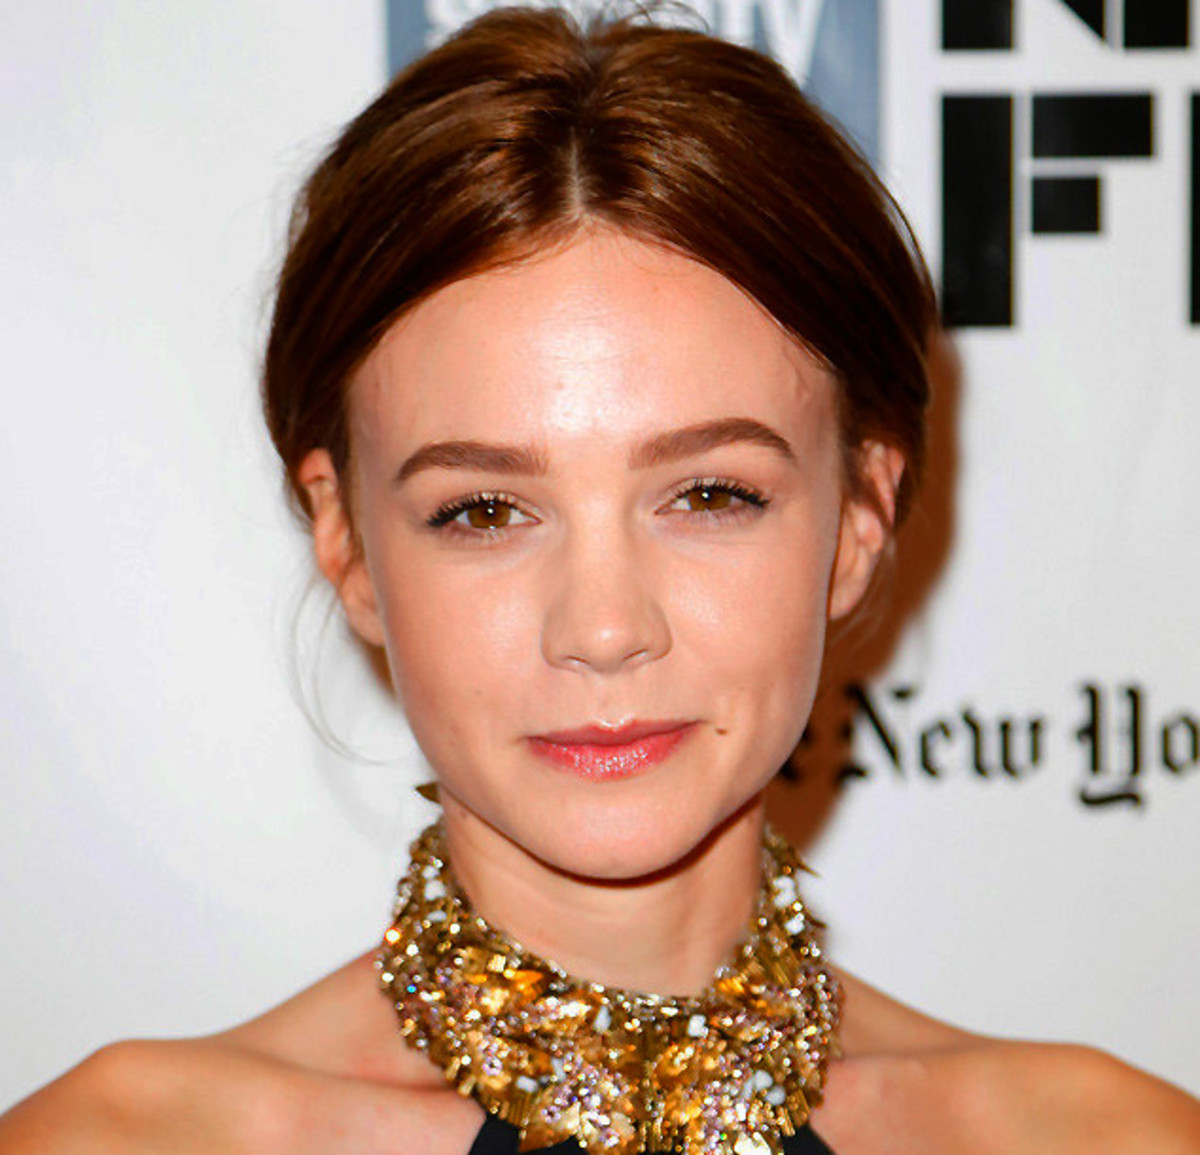 Carey Mulligan as a brunette: now that her hair colour is a shade darker than her eyes, her eyes seem to sparkle more, reflect more light.